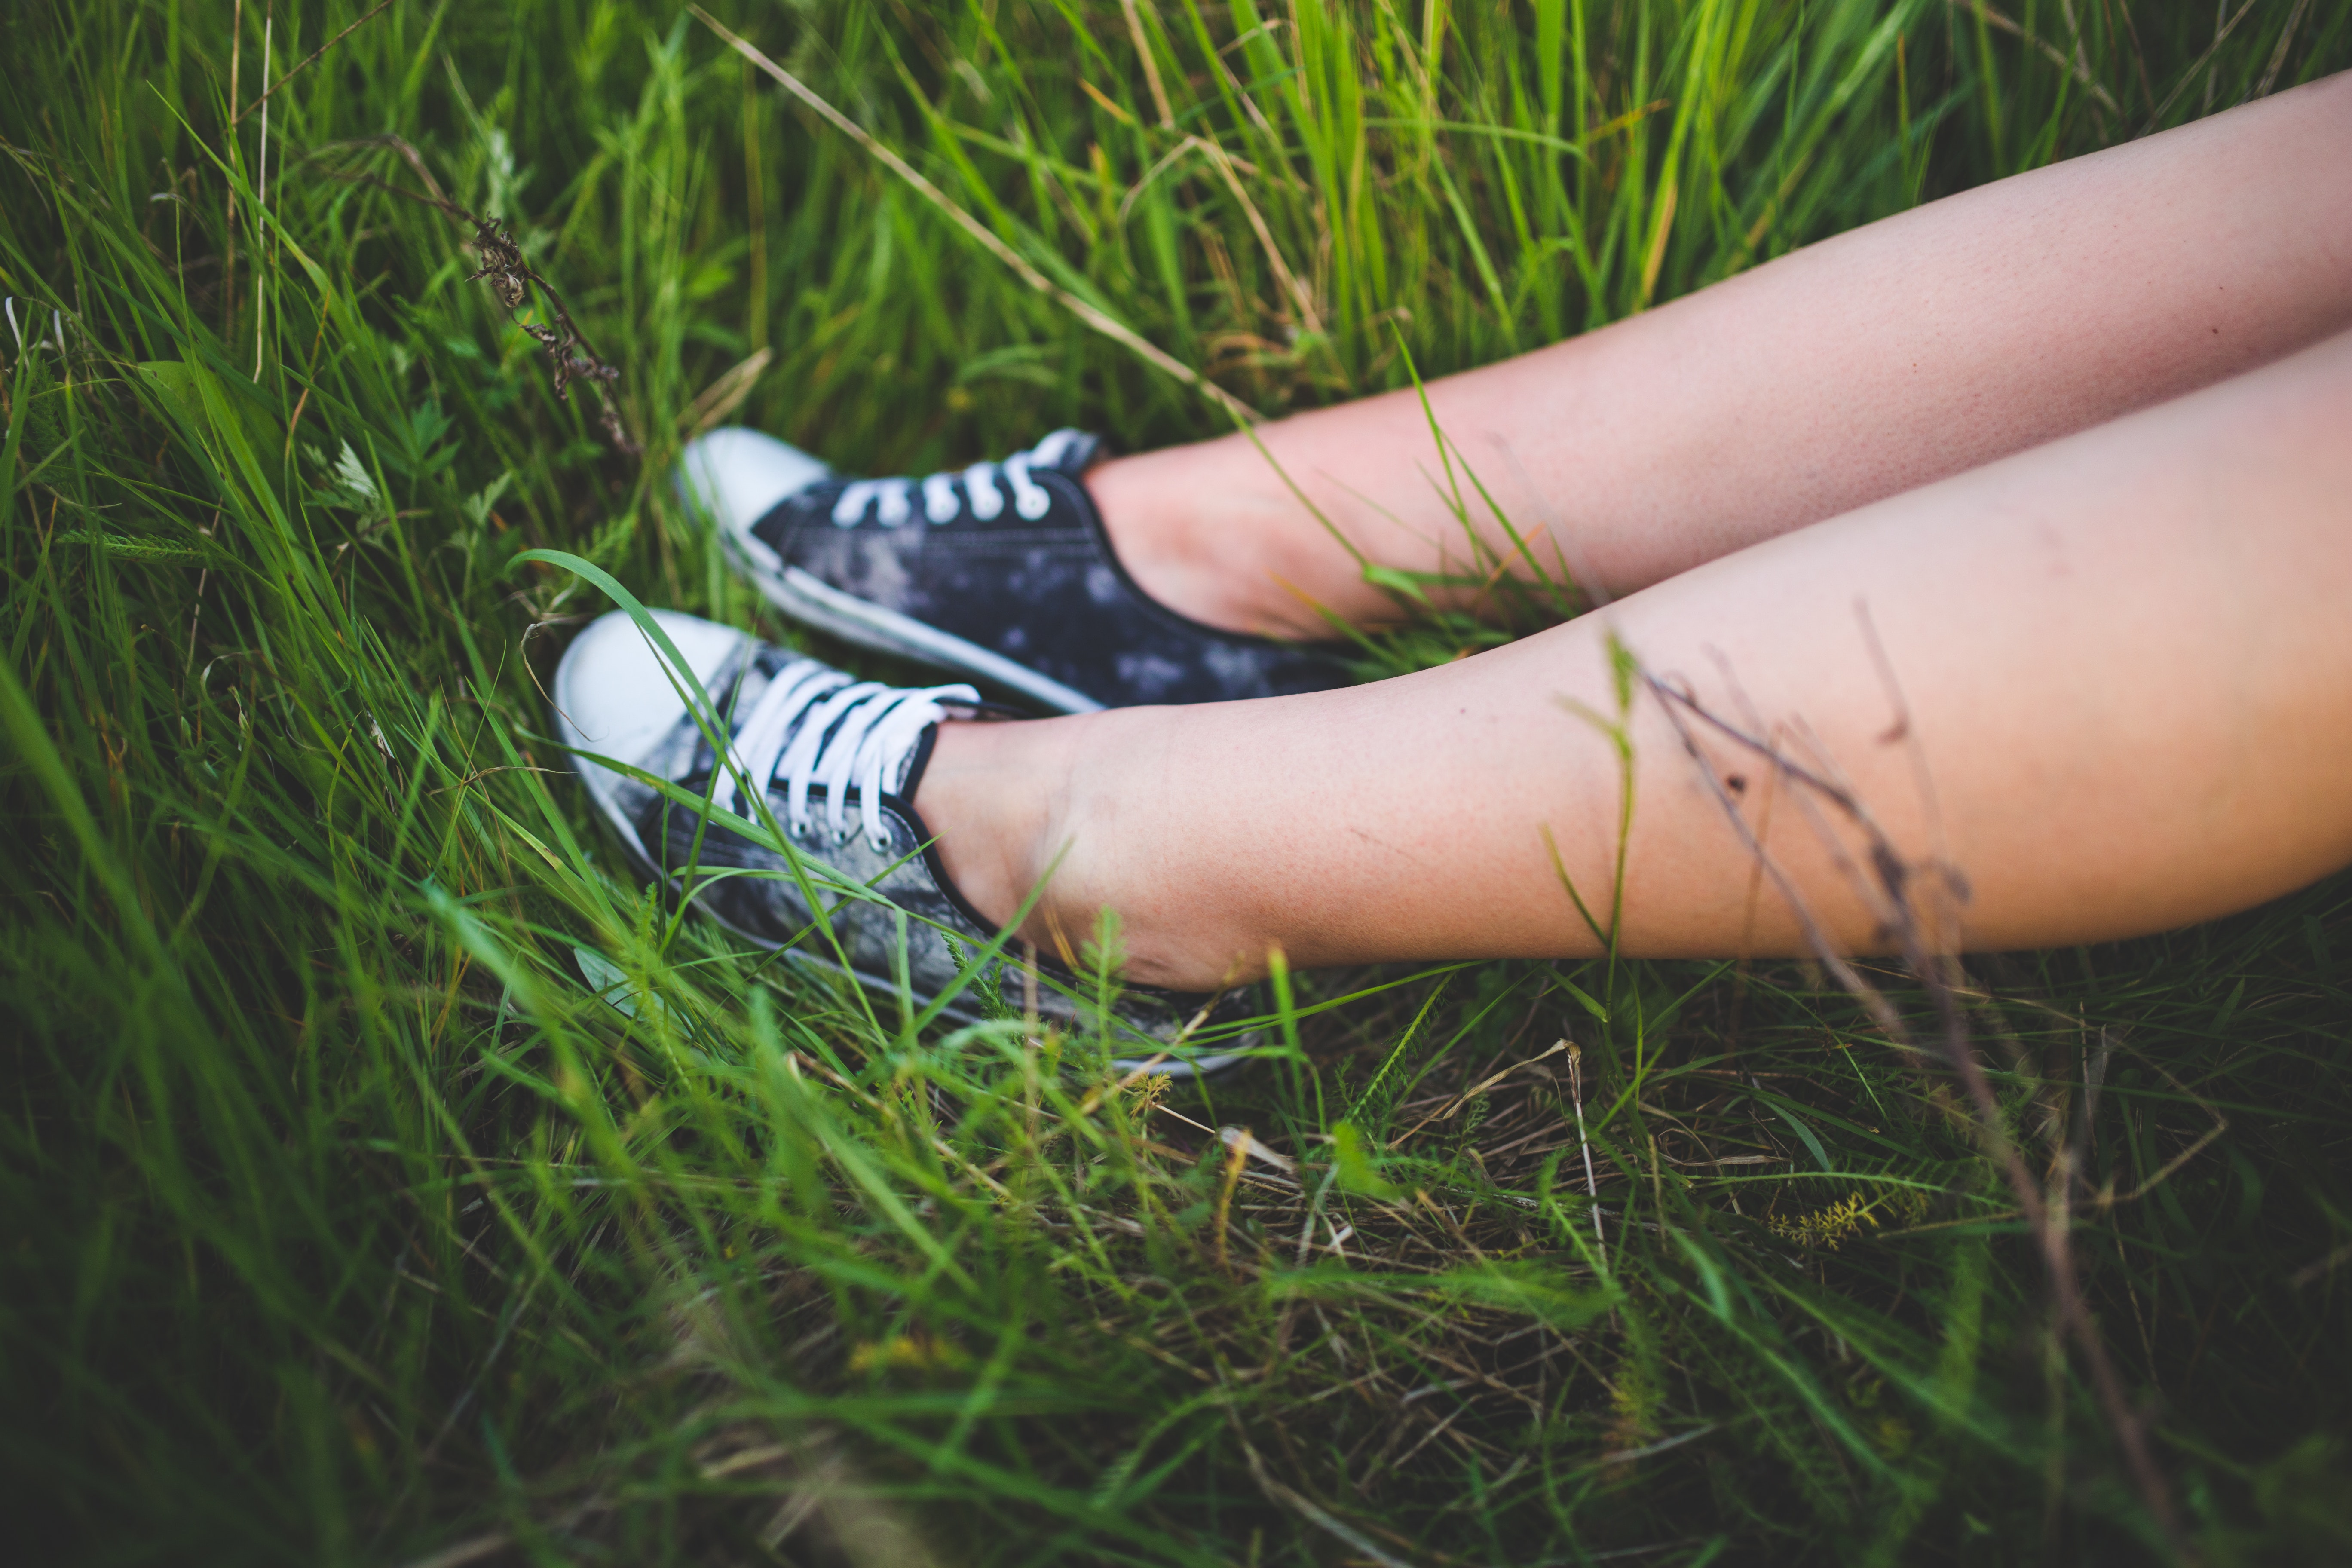 feet-girl-grass-6422